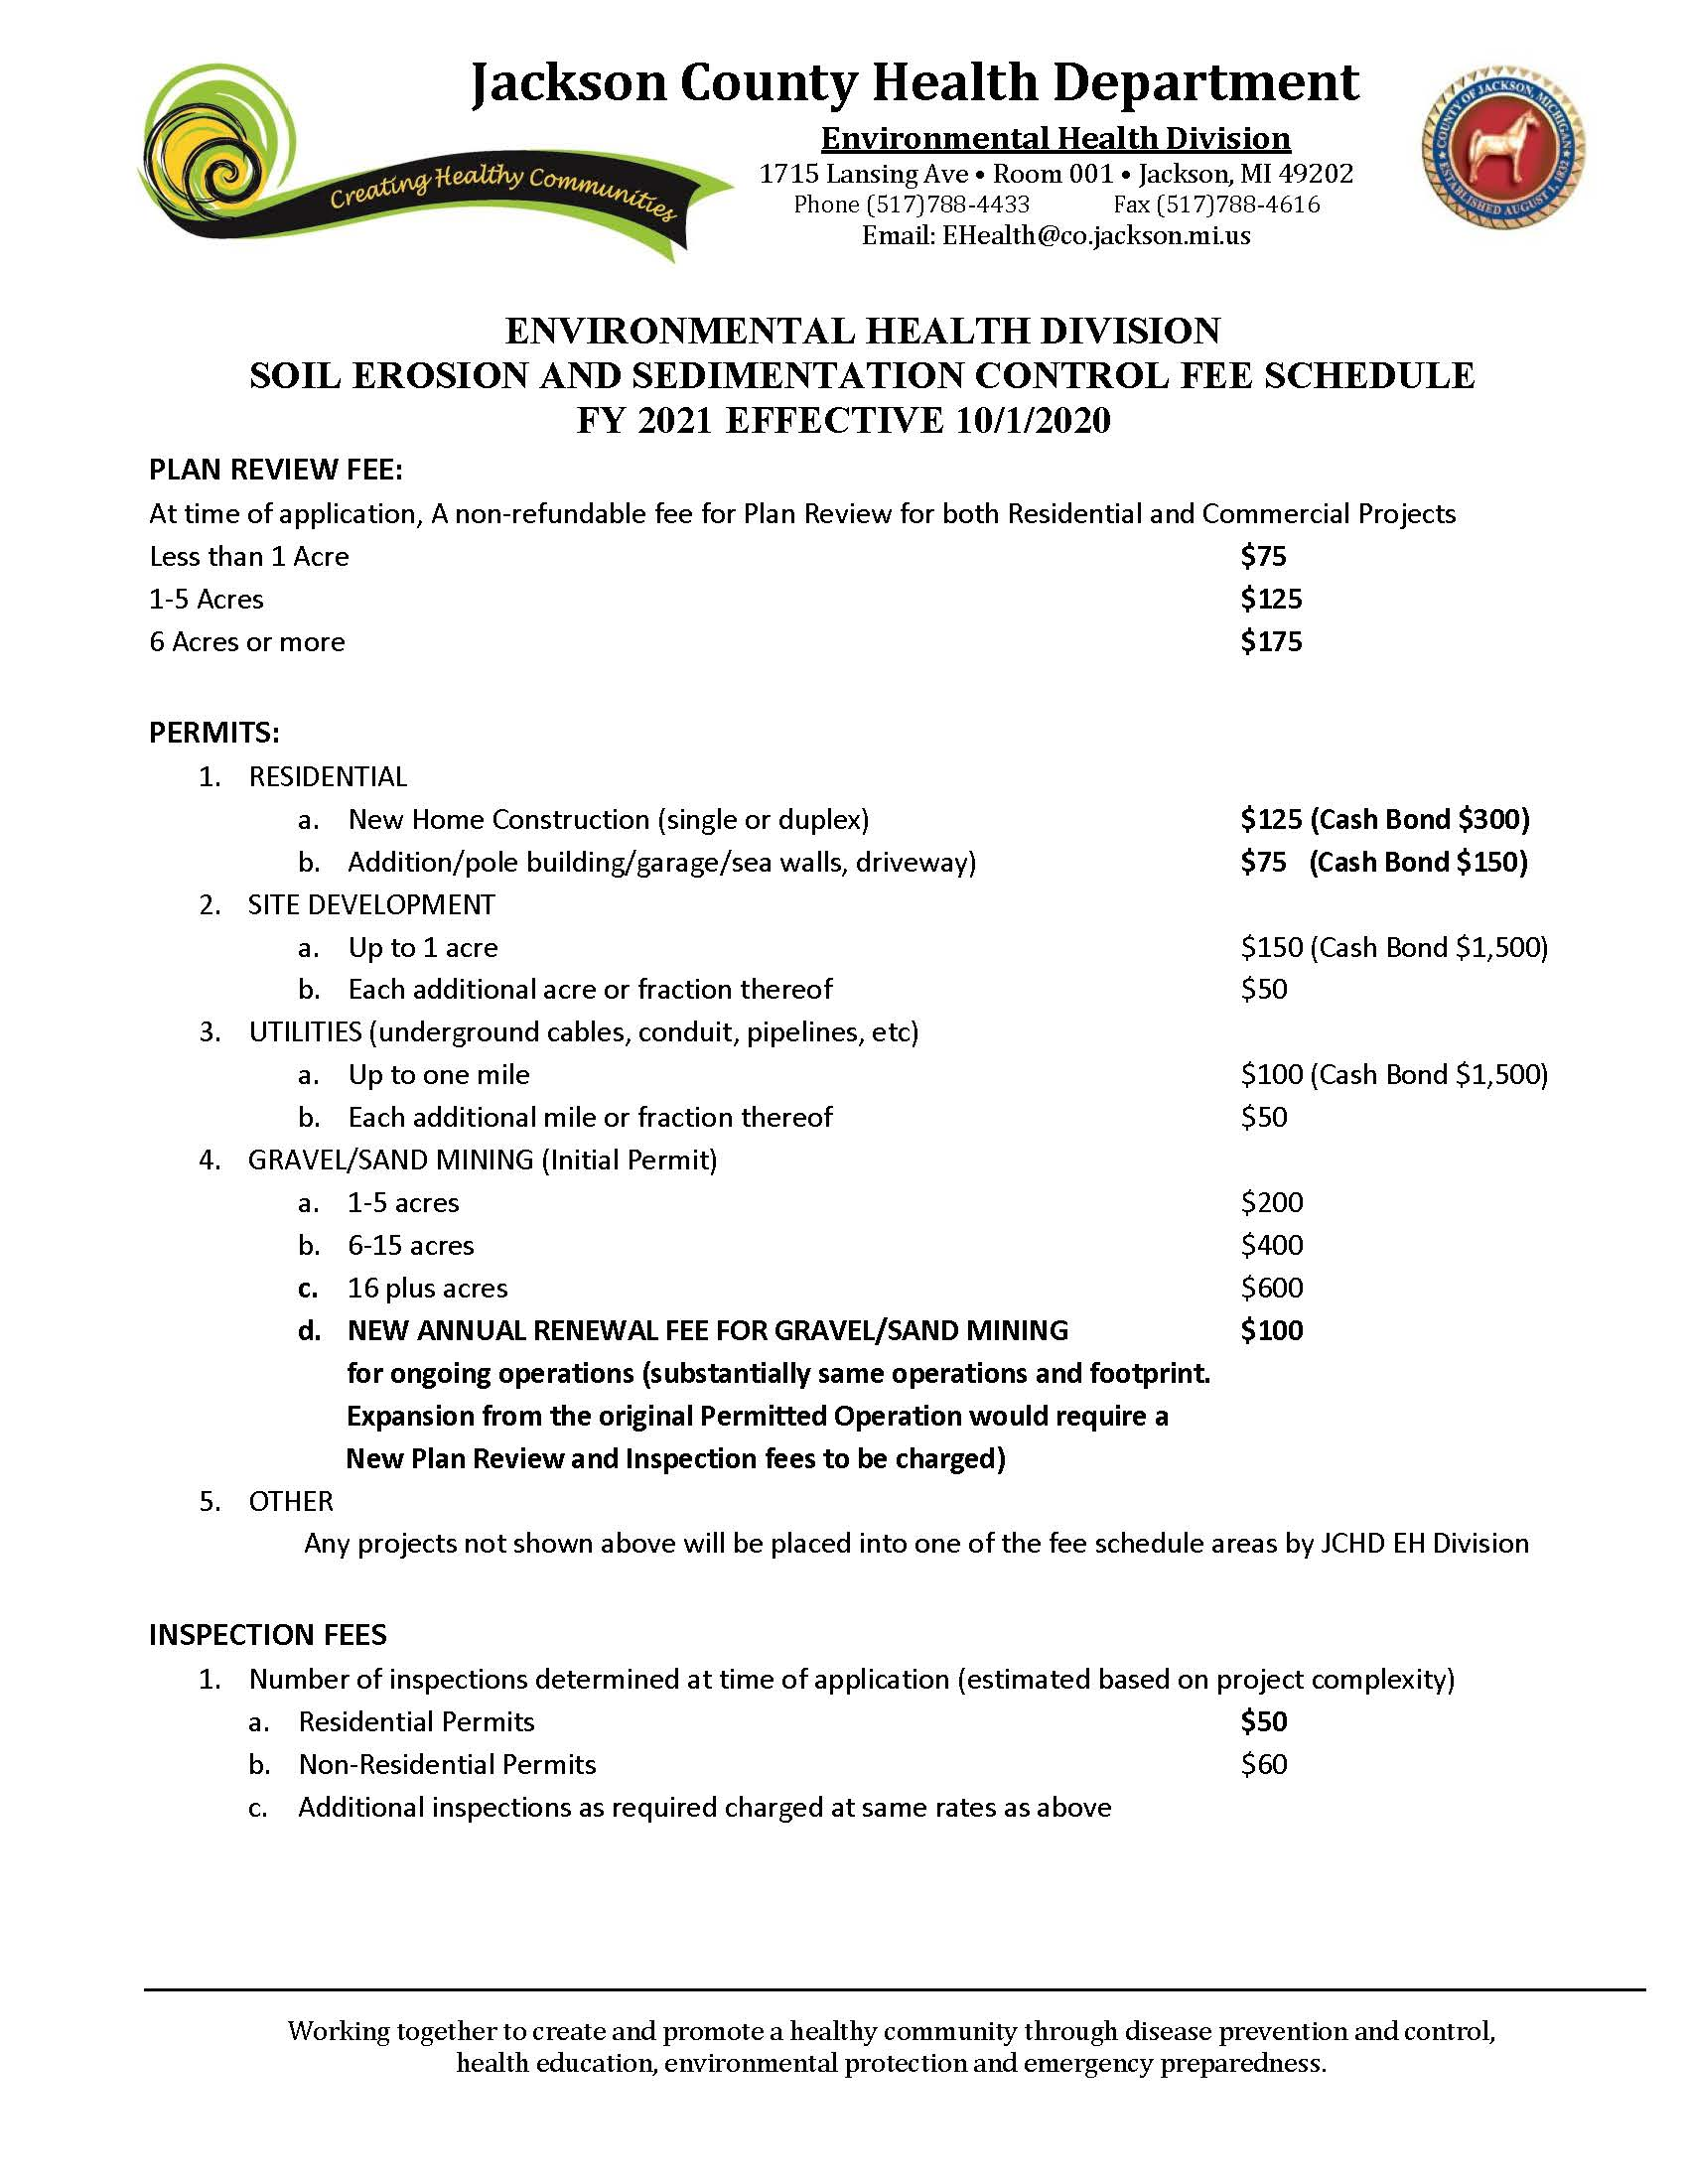 11012019 Soil Erosion Sedimentation Control Fee Schedule